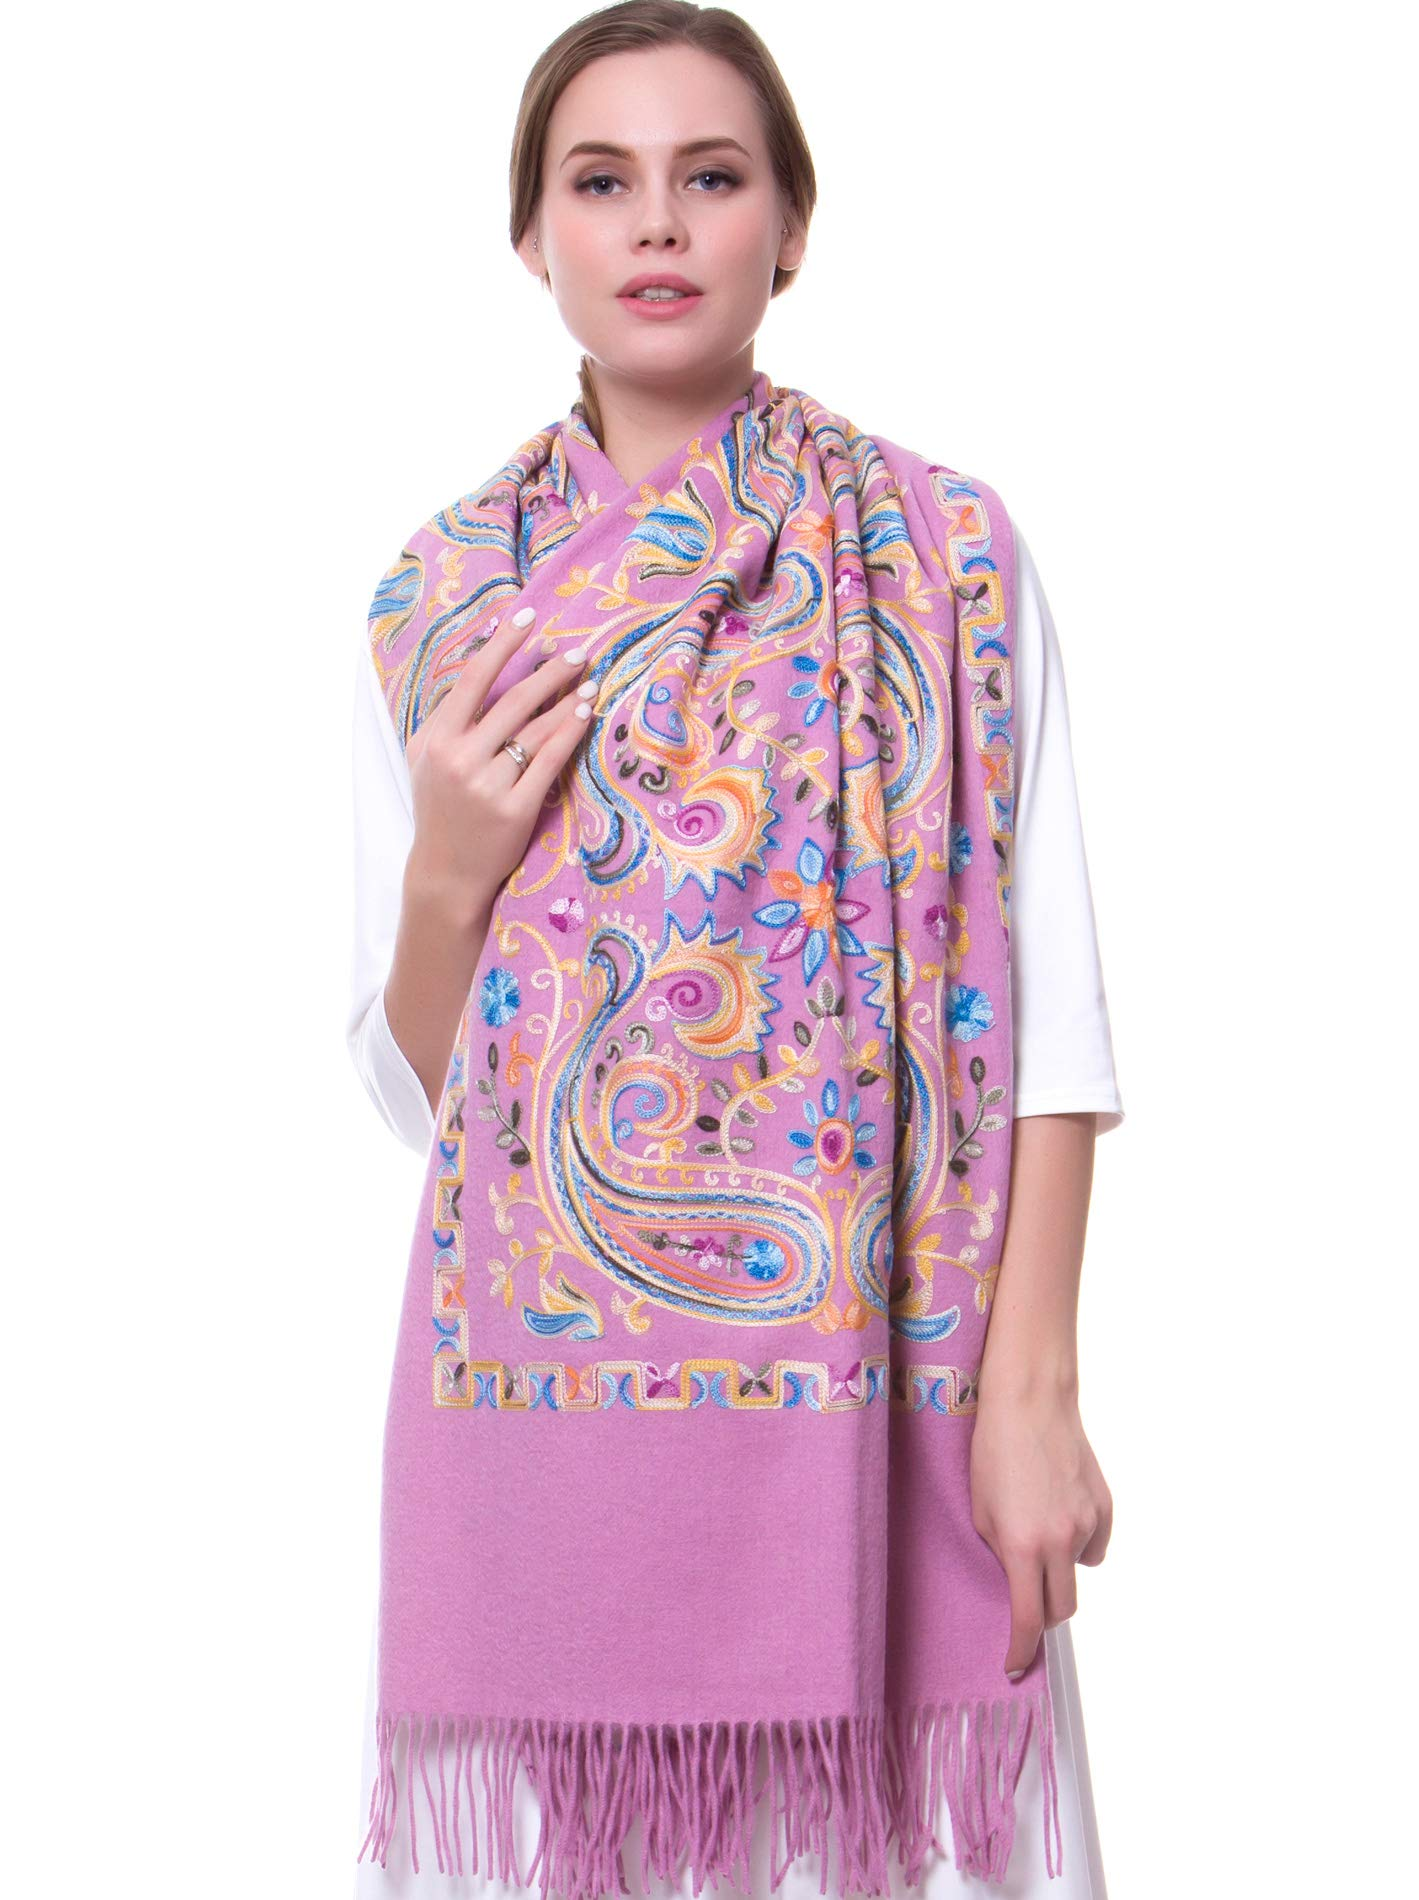 MORCOE Women's Exotic Design Wool Delicate Embroidered Soft Fringe Long Scarf Wrap Ladies Party Shawl Valentines Day Gift (Purple) by MORCOE